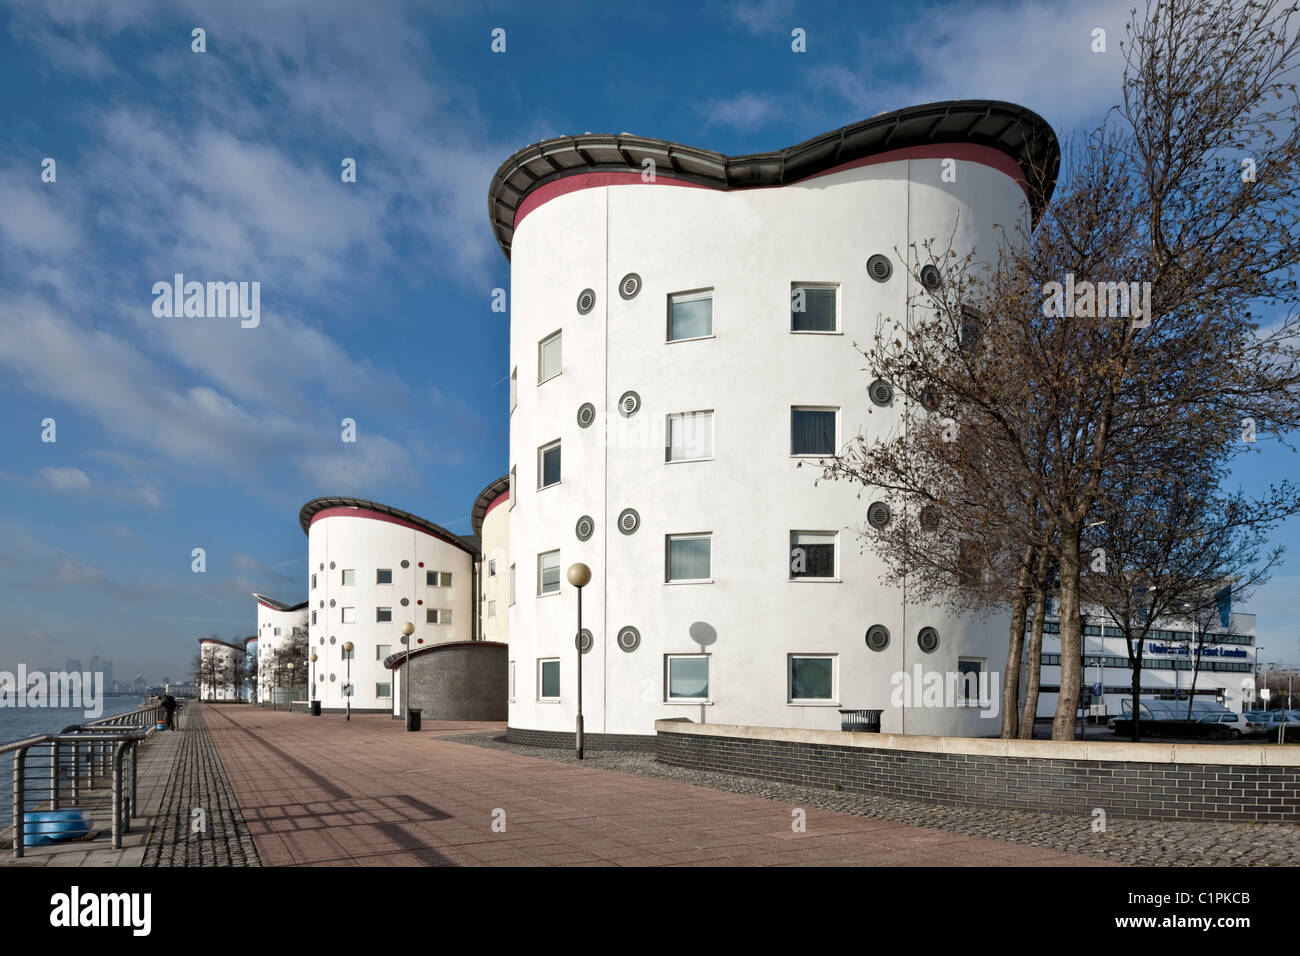 University of East London Docklands Campus - Stock Image